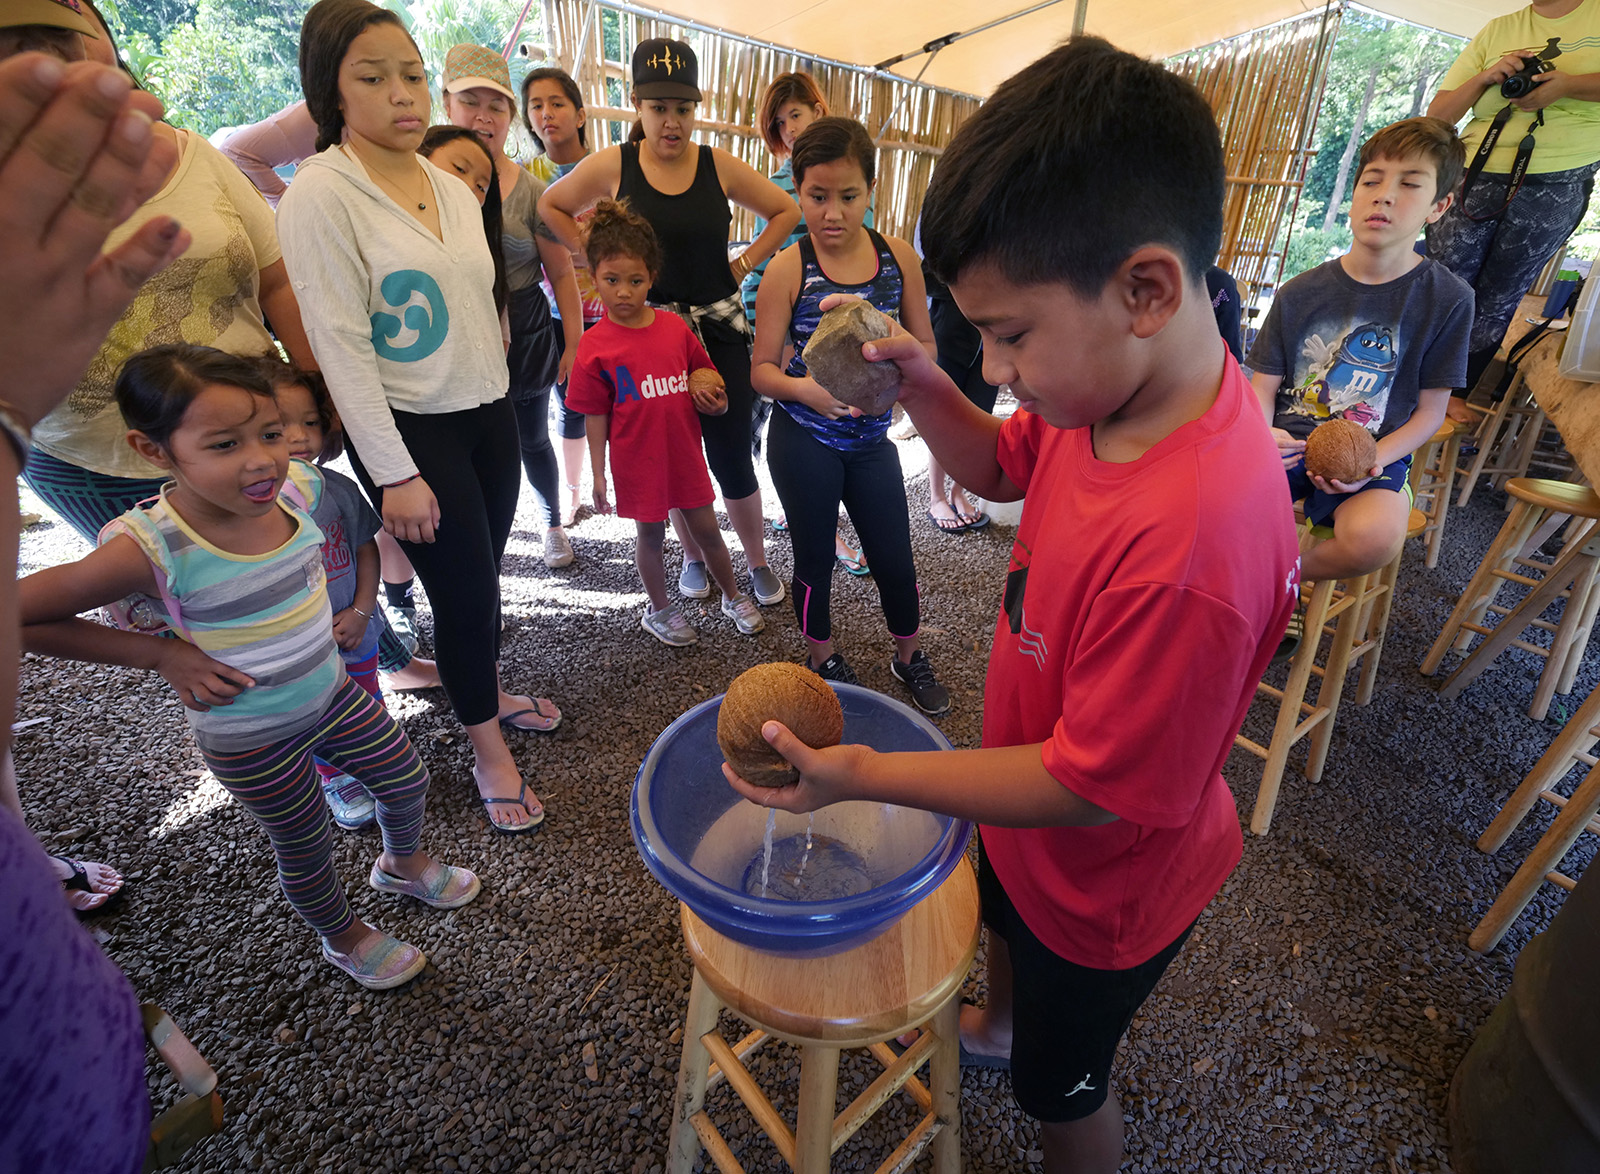 "<p>Eonsa Lyman, 10, cracks open a coconut for the first time during the community lesson. On its website, Kokua Kalihi Valley says it serves over 10,000 people a year ""to foster health in the broadest sense — physical, mental, emotional and spiritual.""</p>"